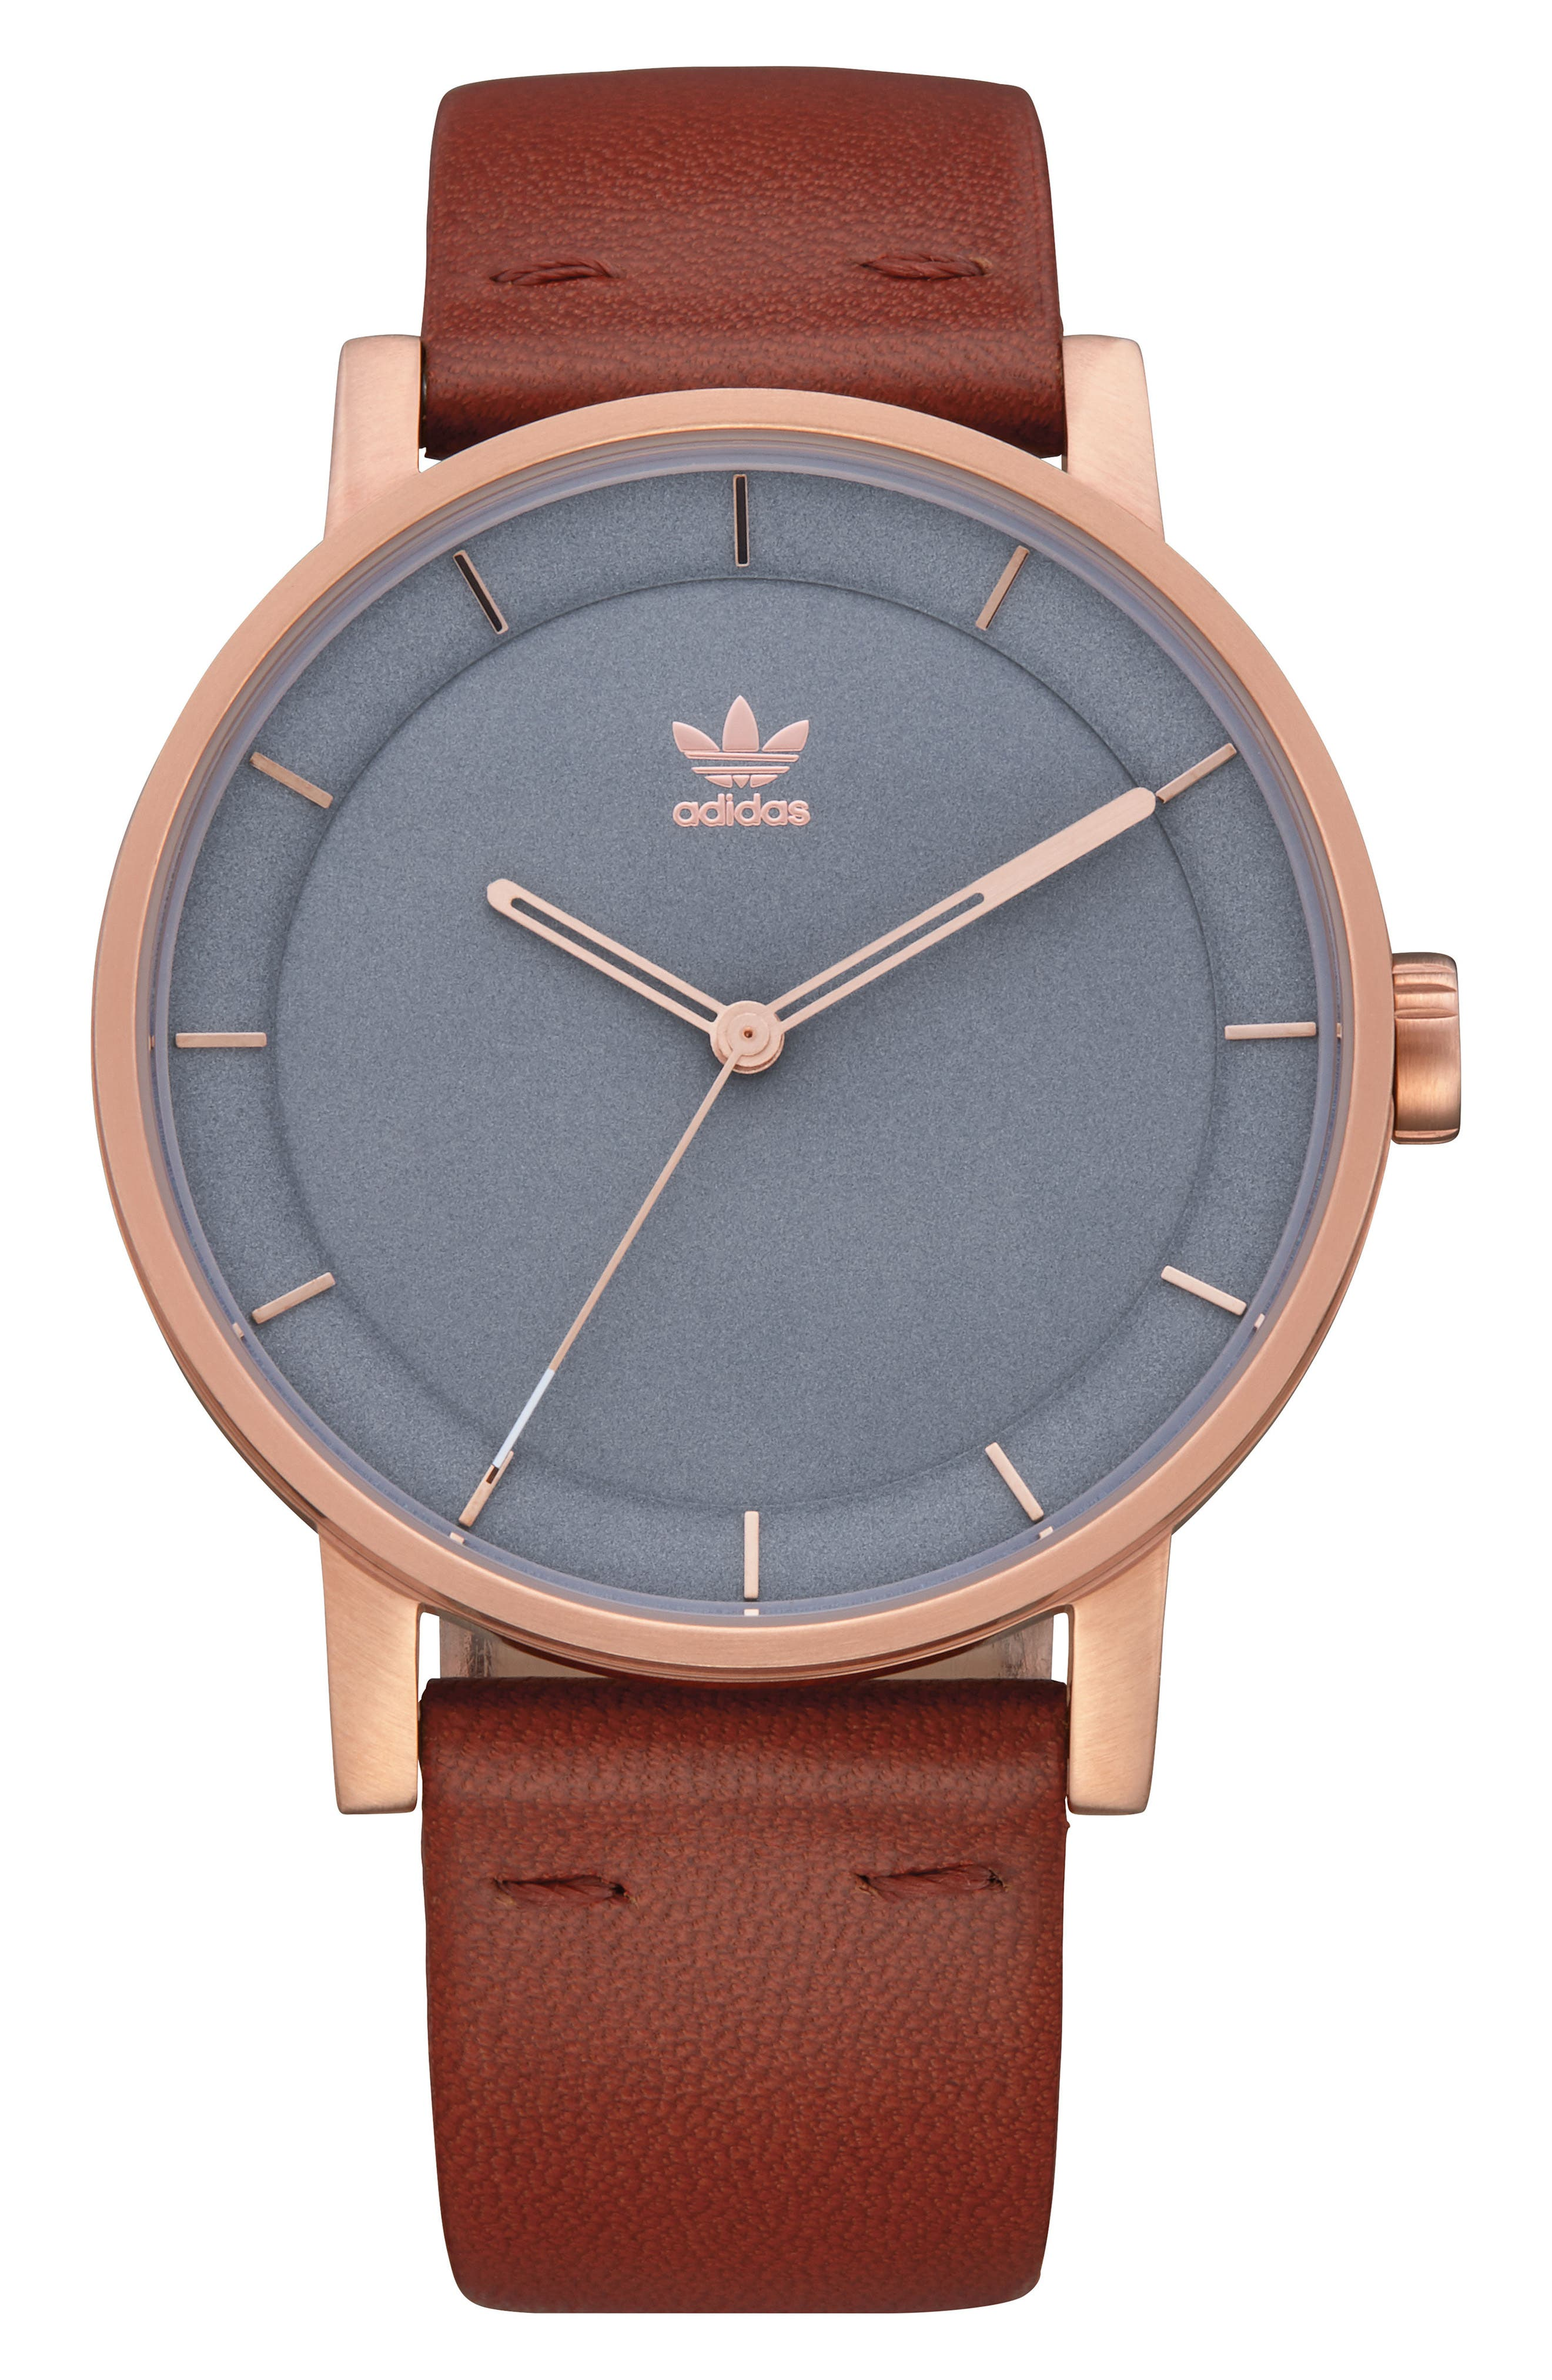 ADIDAS, District Leather Strap Watch, 40mm, Main thumbnail 1, color, SADDLE/ SLATE/ ROSE GOLD